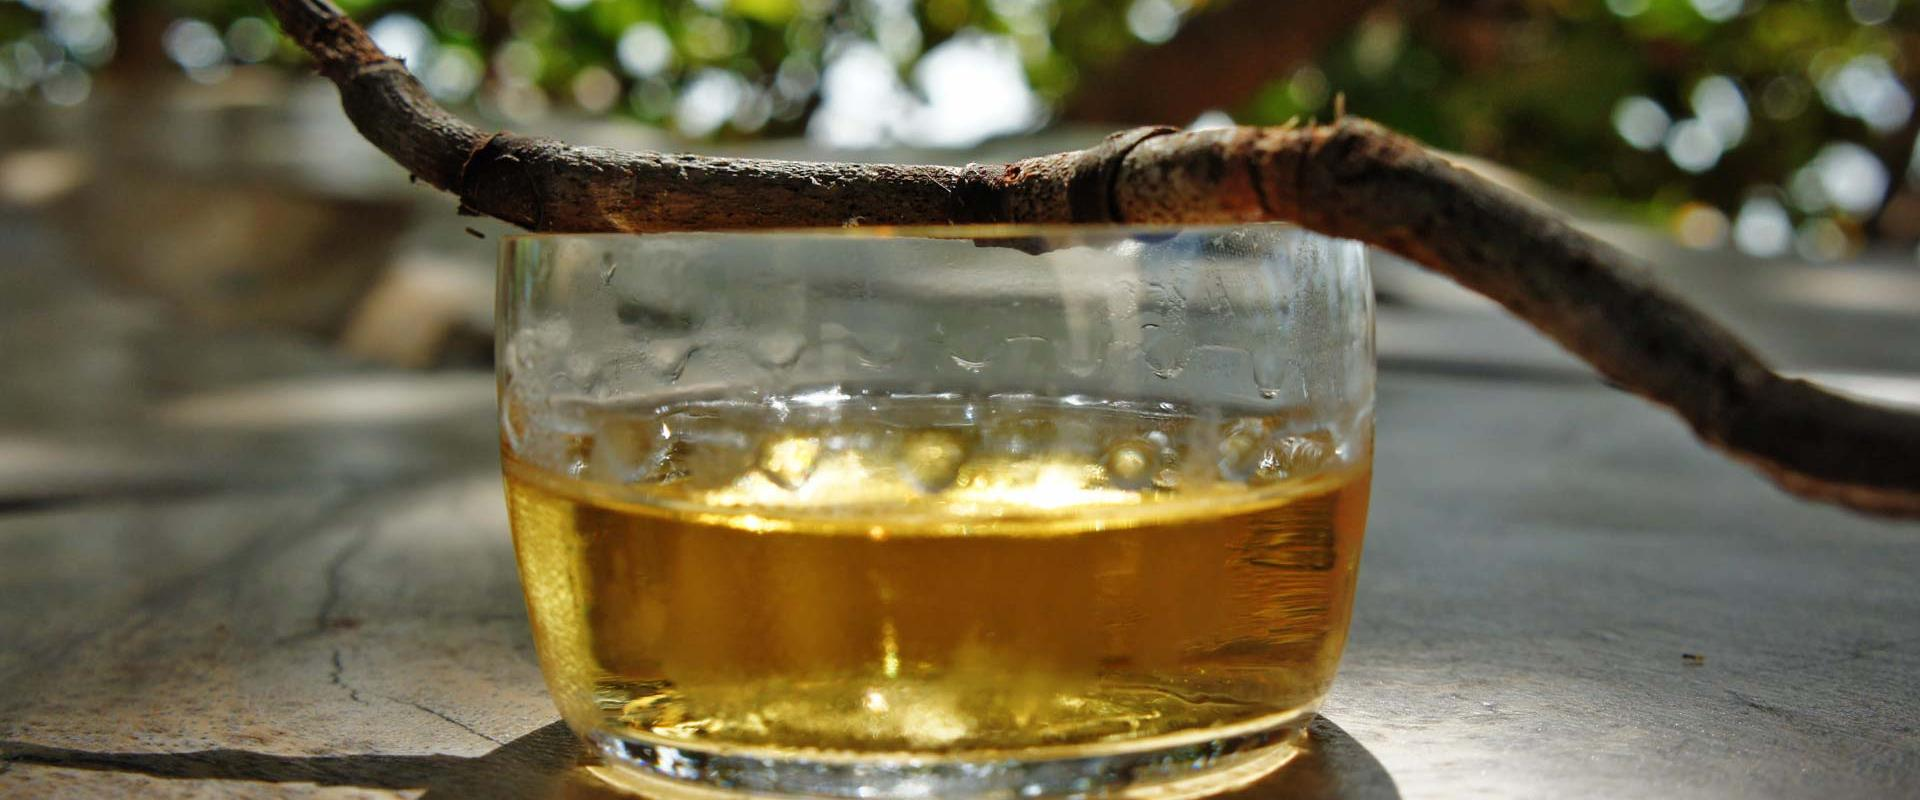 """Tasting of typical """"Sciacchetrà"""" wine, A typical ligurian """"Passito""""!"""